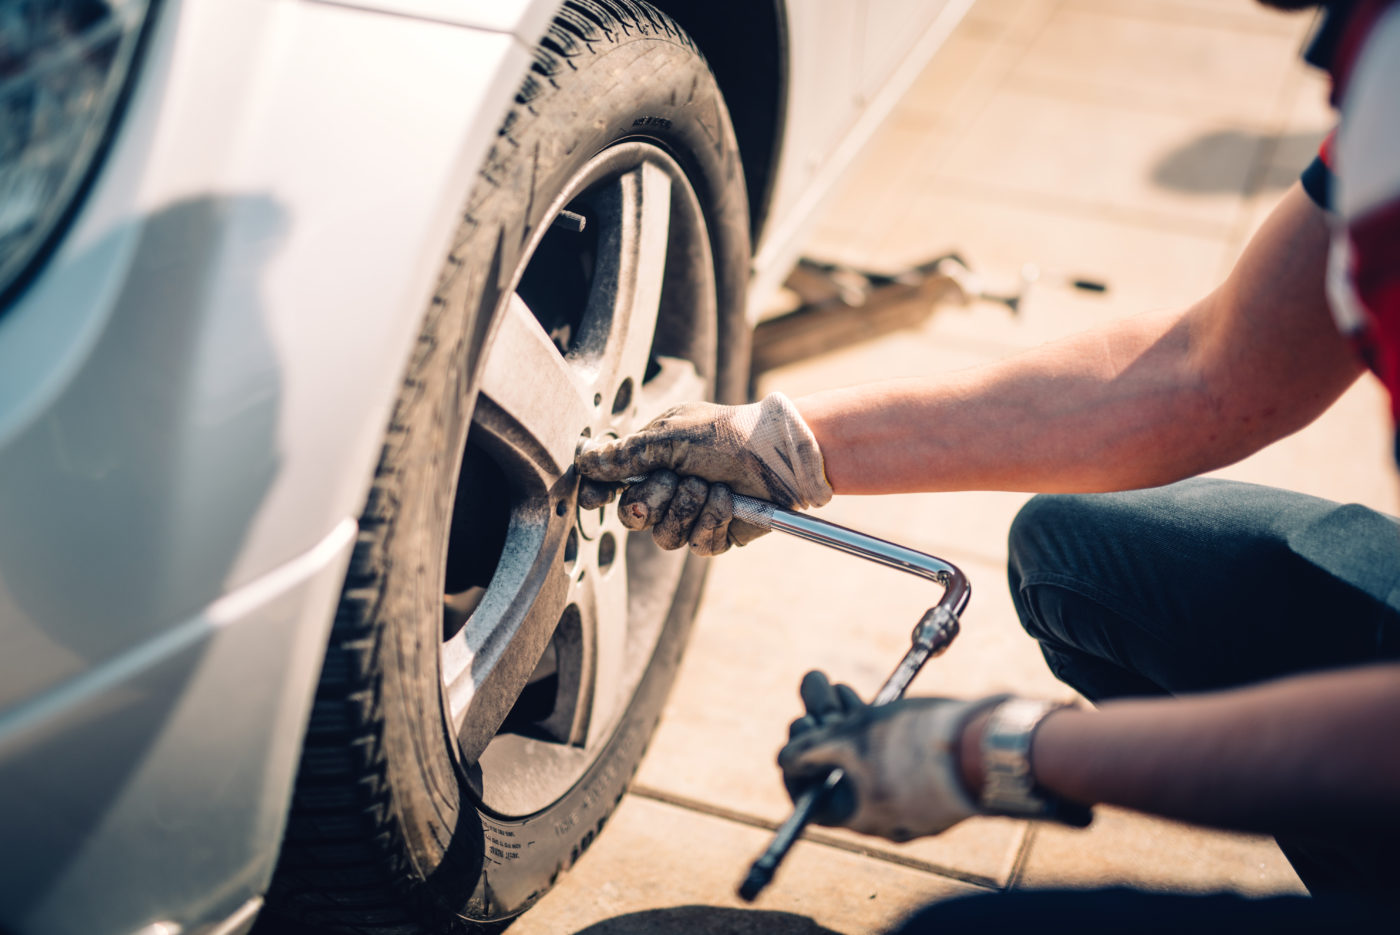 Tire maintenance, damaged car tyre or changing seasonal tires using wrench. Changing a flat car tire on the sideroad